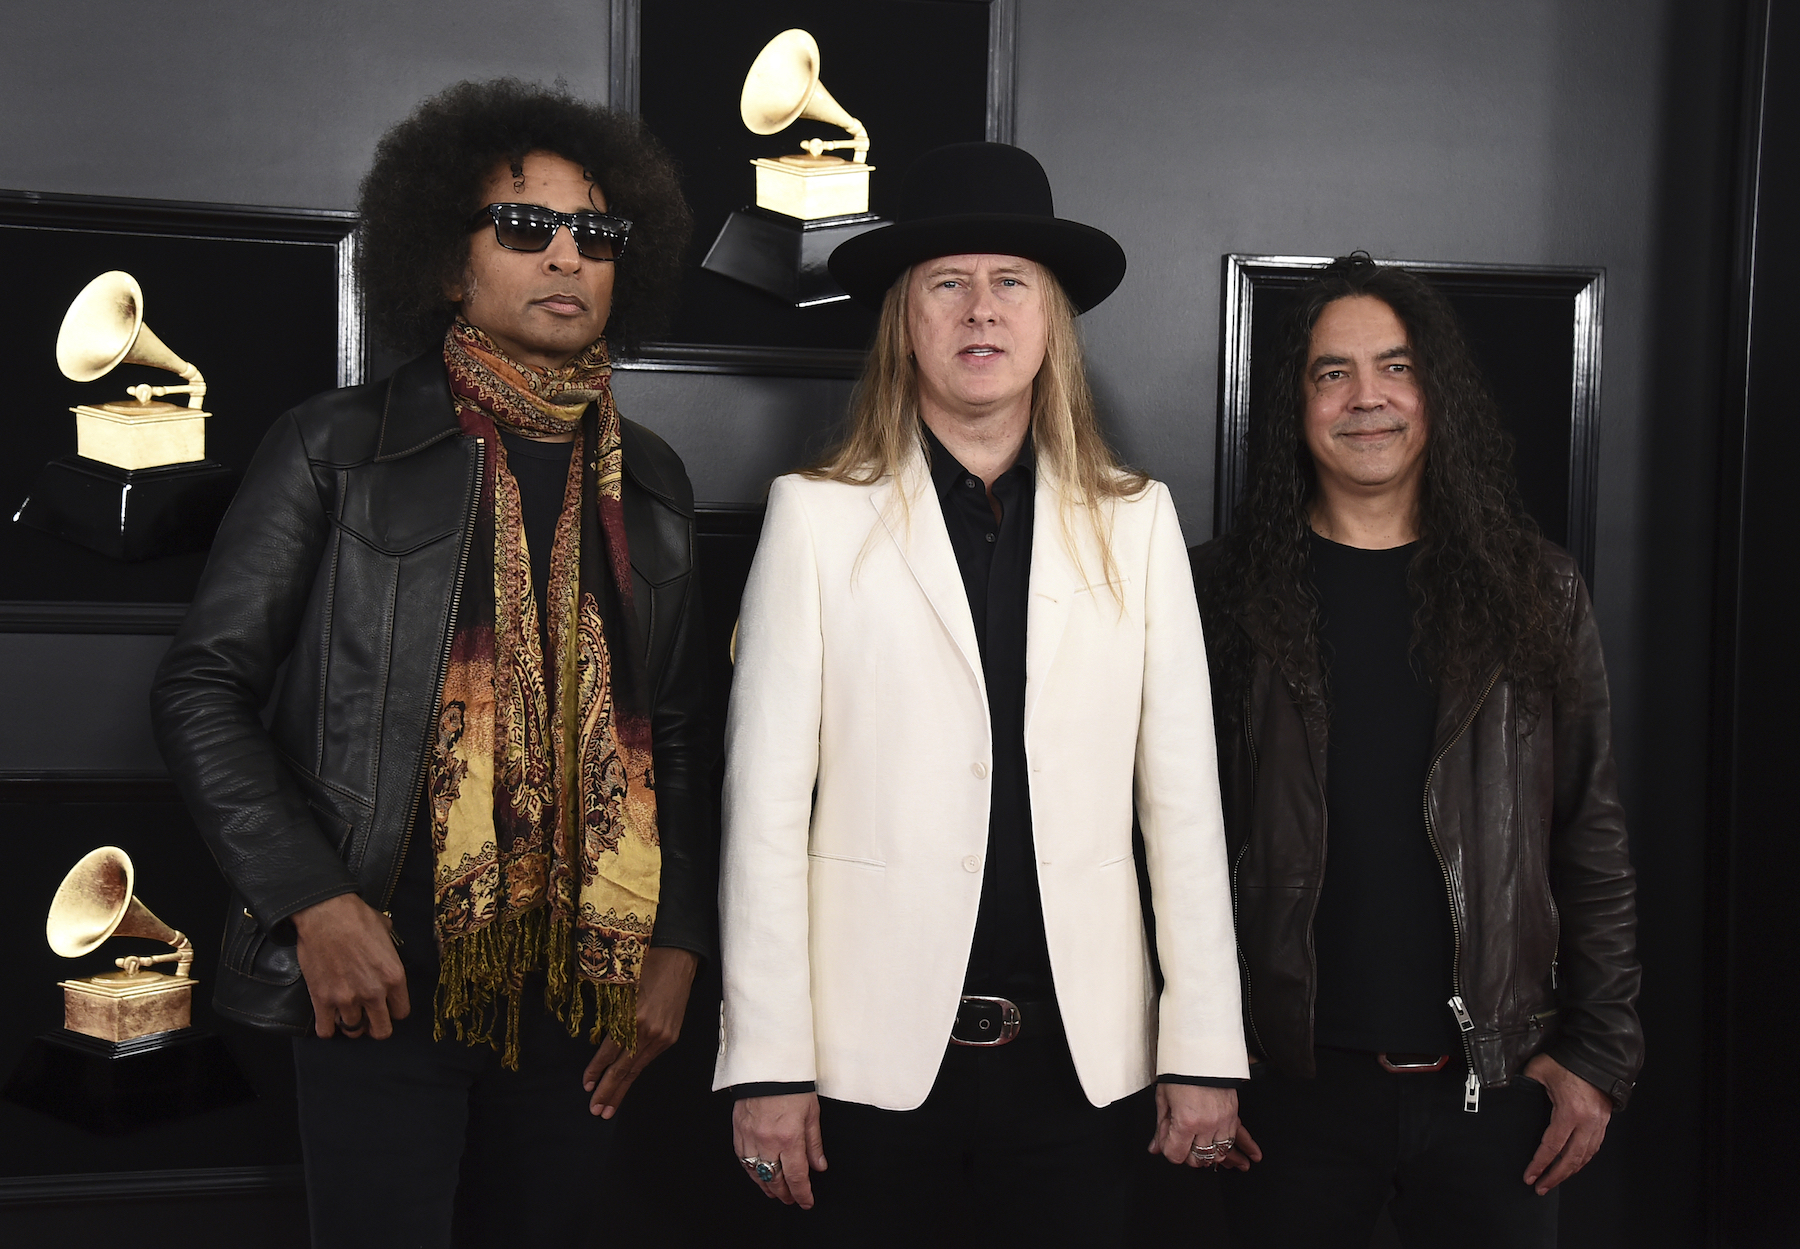 <div class='meta'><div class='origin-logo' data-origin='AP'></div><span class='caption-text' data-credit='Jordan Strauss/Invision/AP'>William DuVall, from left, Jerry Cantrell and Mike Inez of Alice in Chains arrive at the 61st annual Grammy Awards at the Staples Center on Sunday, Feb. 10, 2019, in Los Angeles.</span></div>